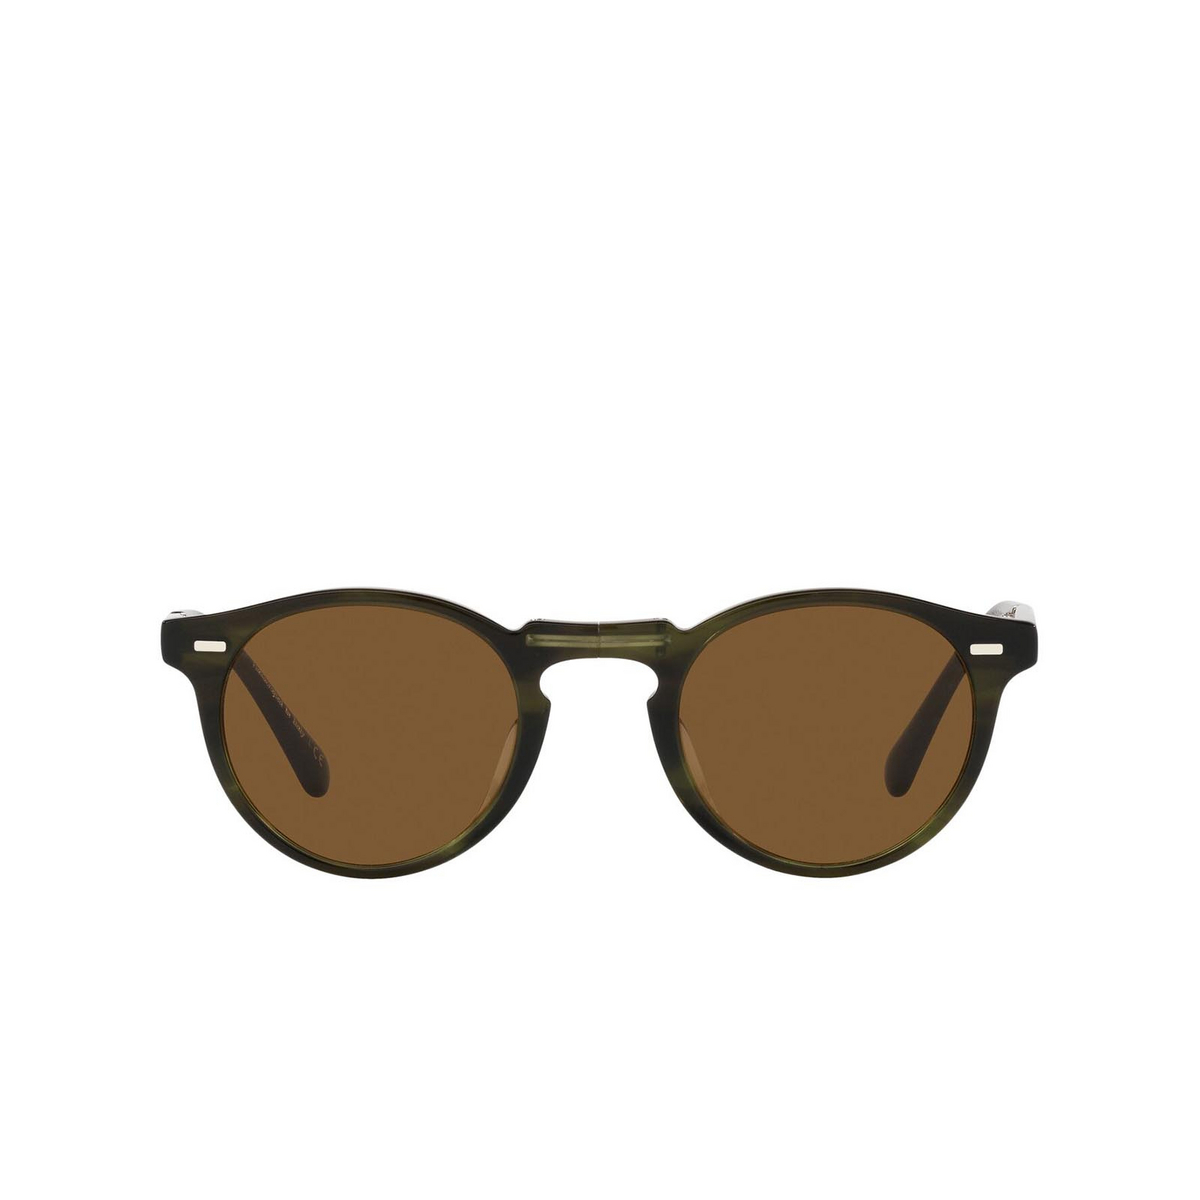 Oliver Peoples® Round Sunglasses: Gregory Peck 1962 OV5456SU color Emerald Bark 168053 - front view.